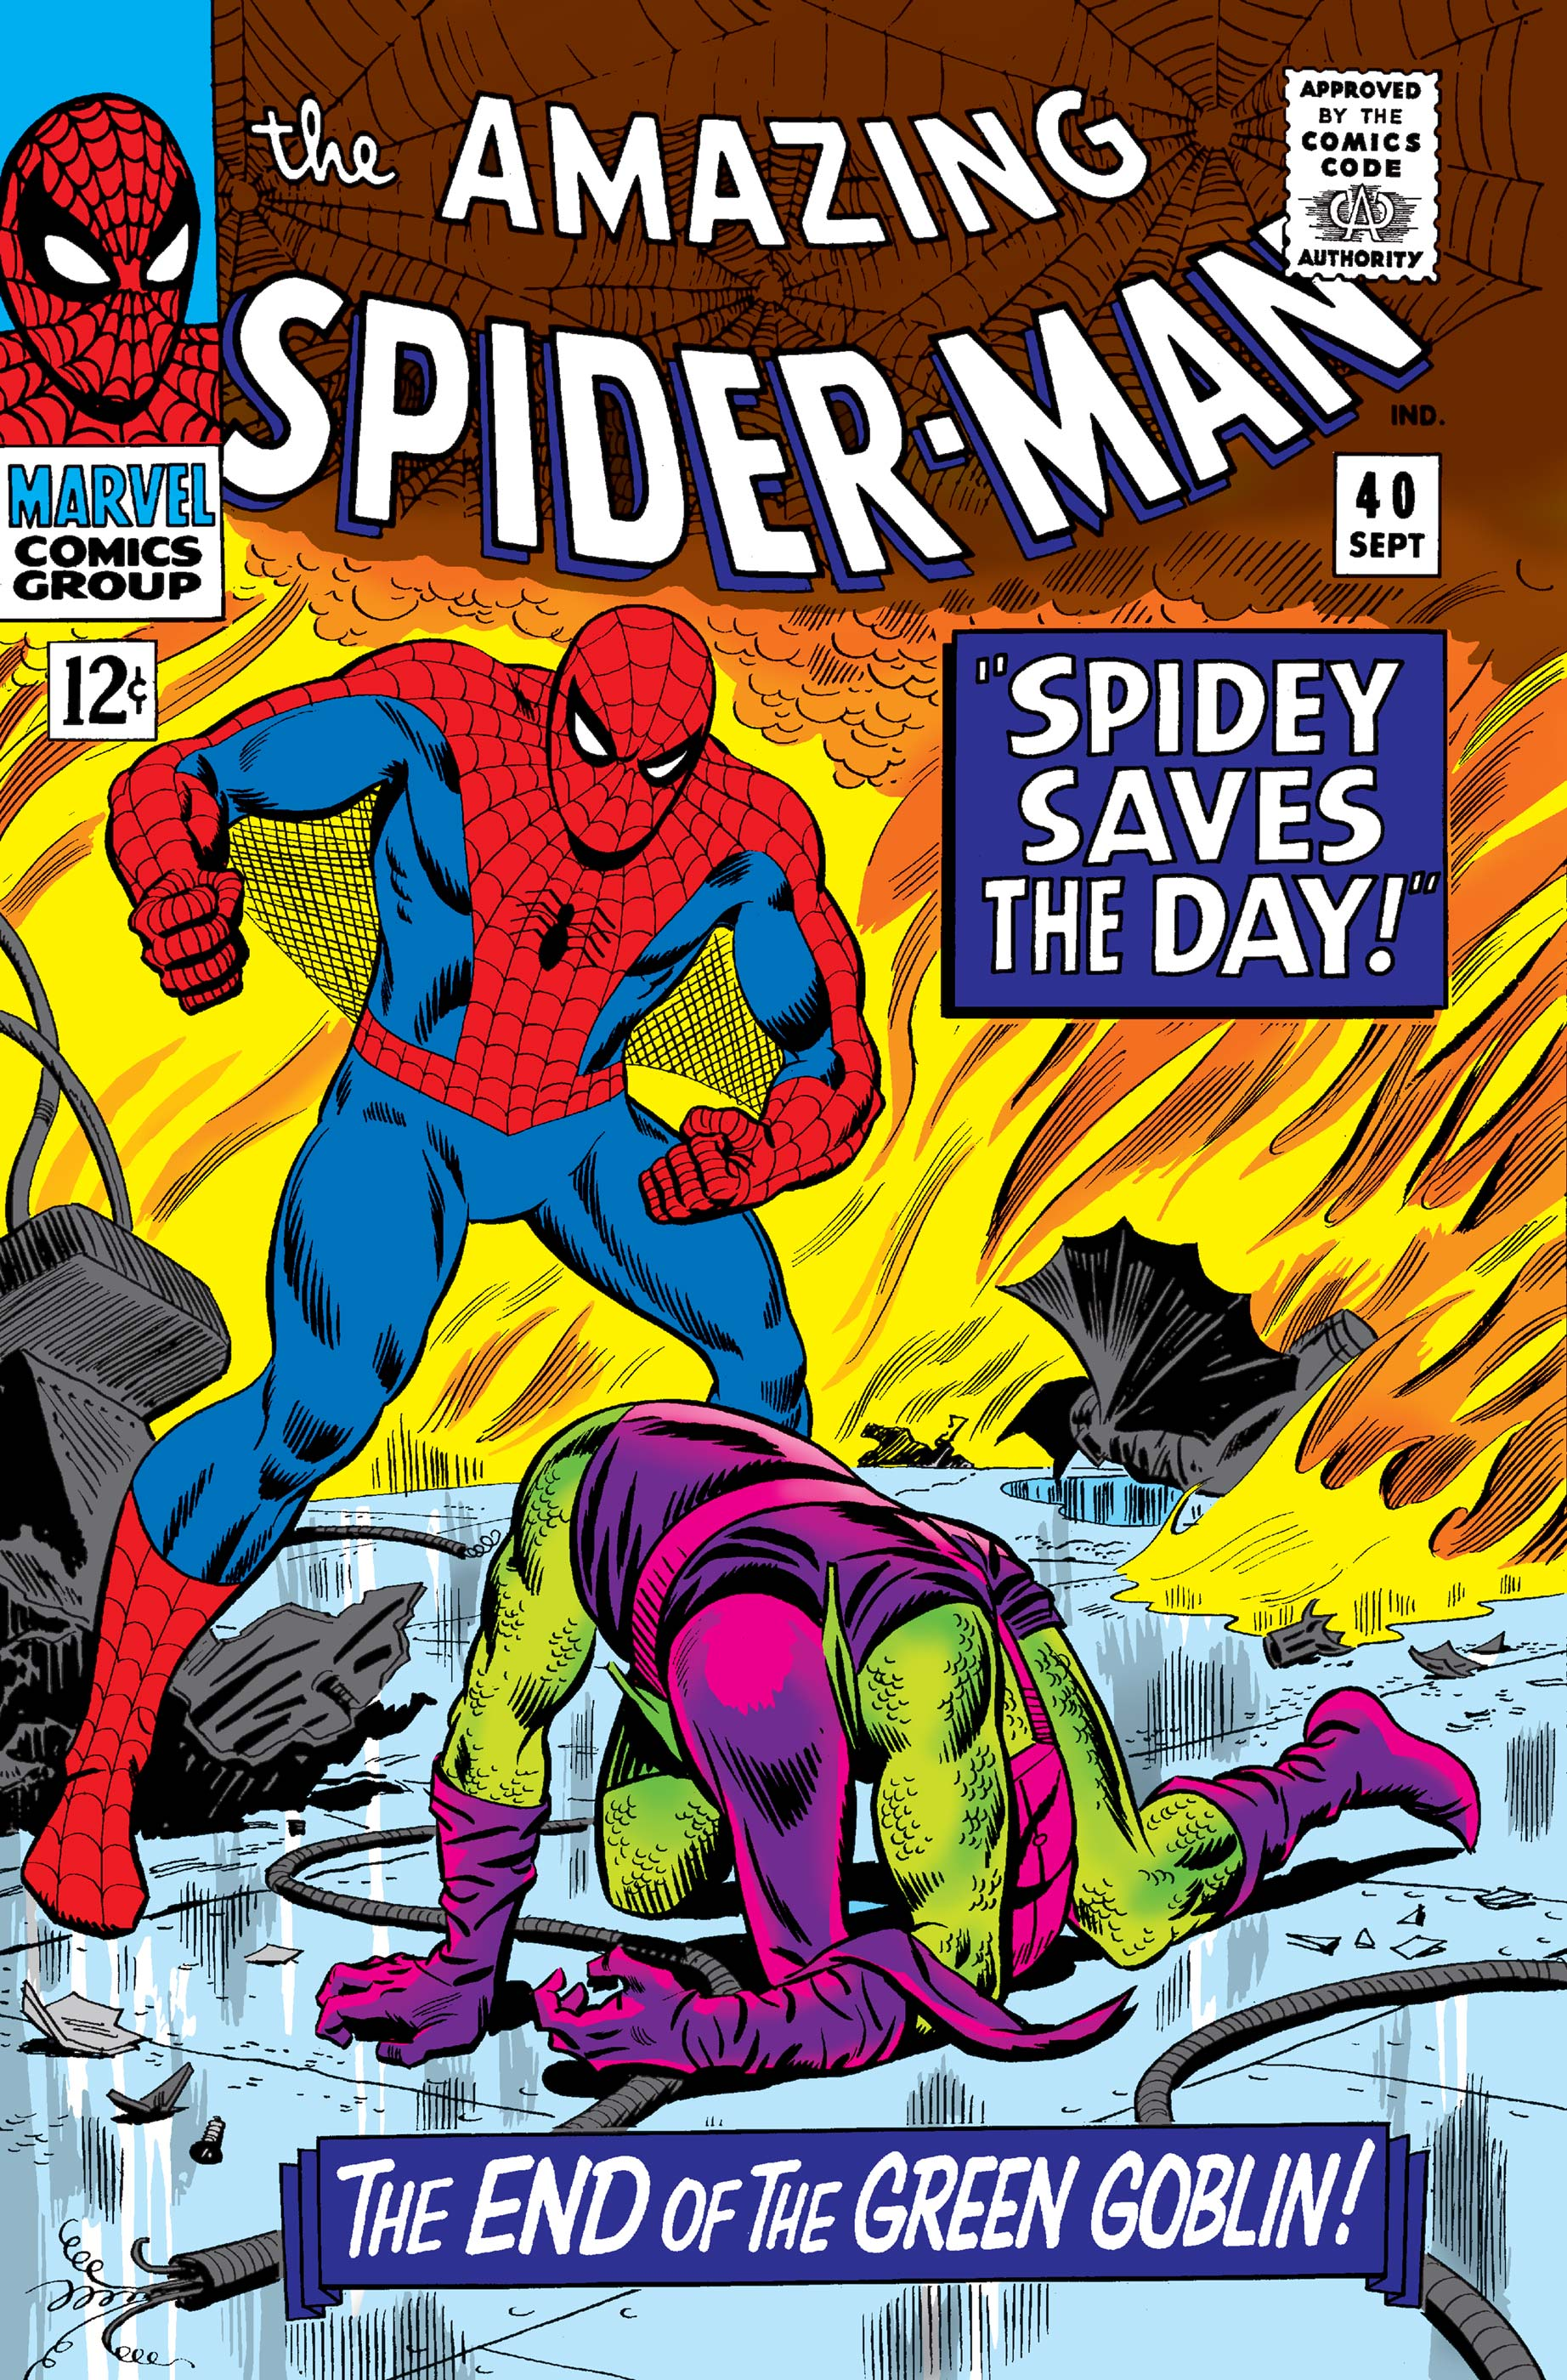 The Amazing Spider-Man (1963) #40